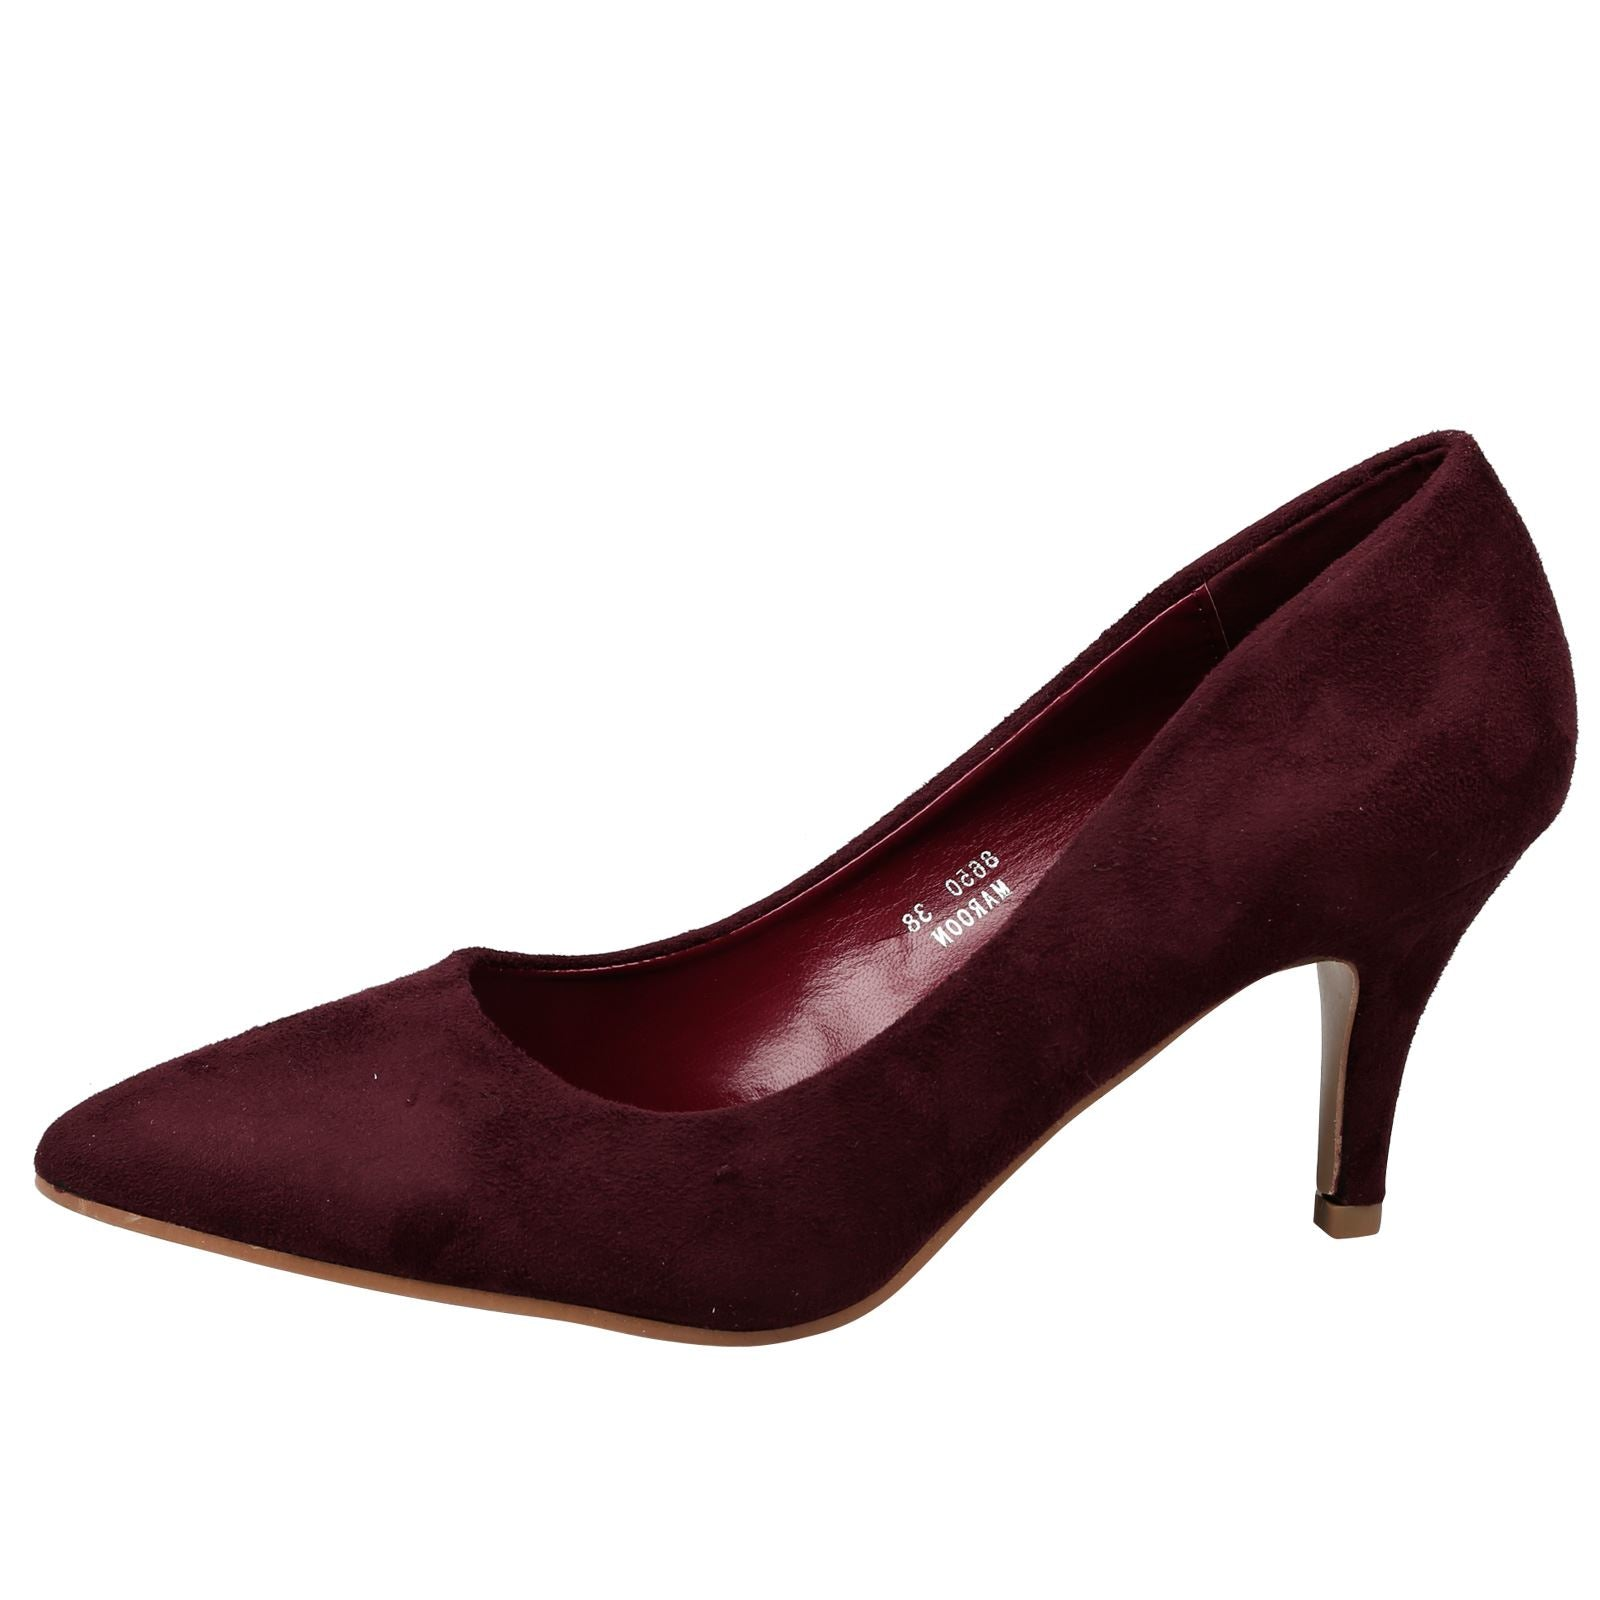 Maude Kitten Heel Pointed Toe Court Shoes in Maroon Red Faux Suede